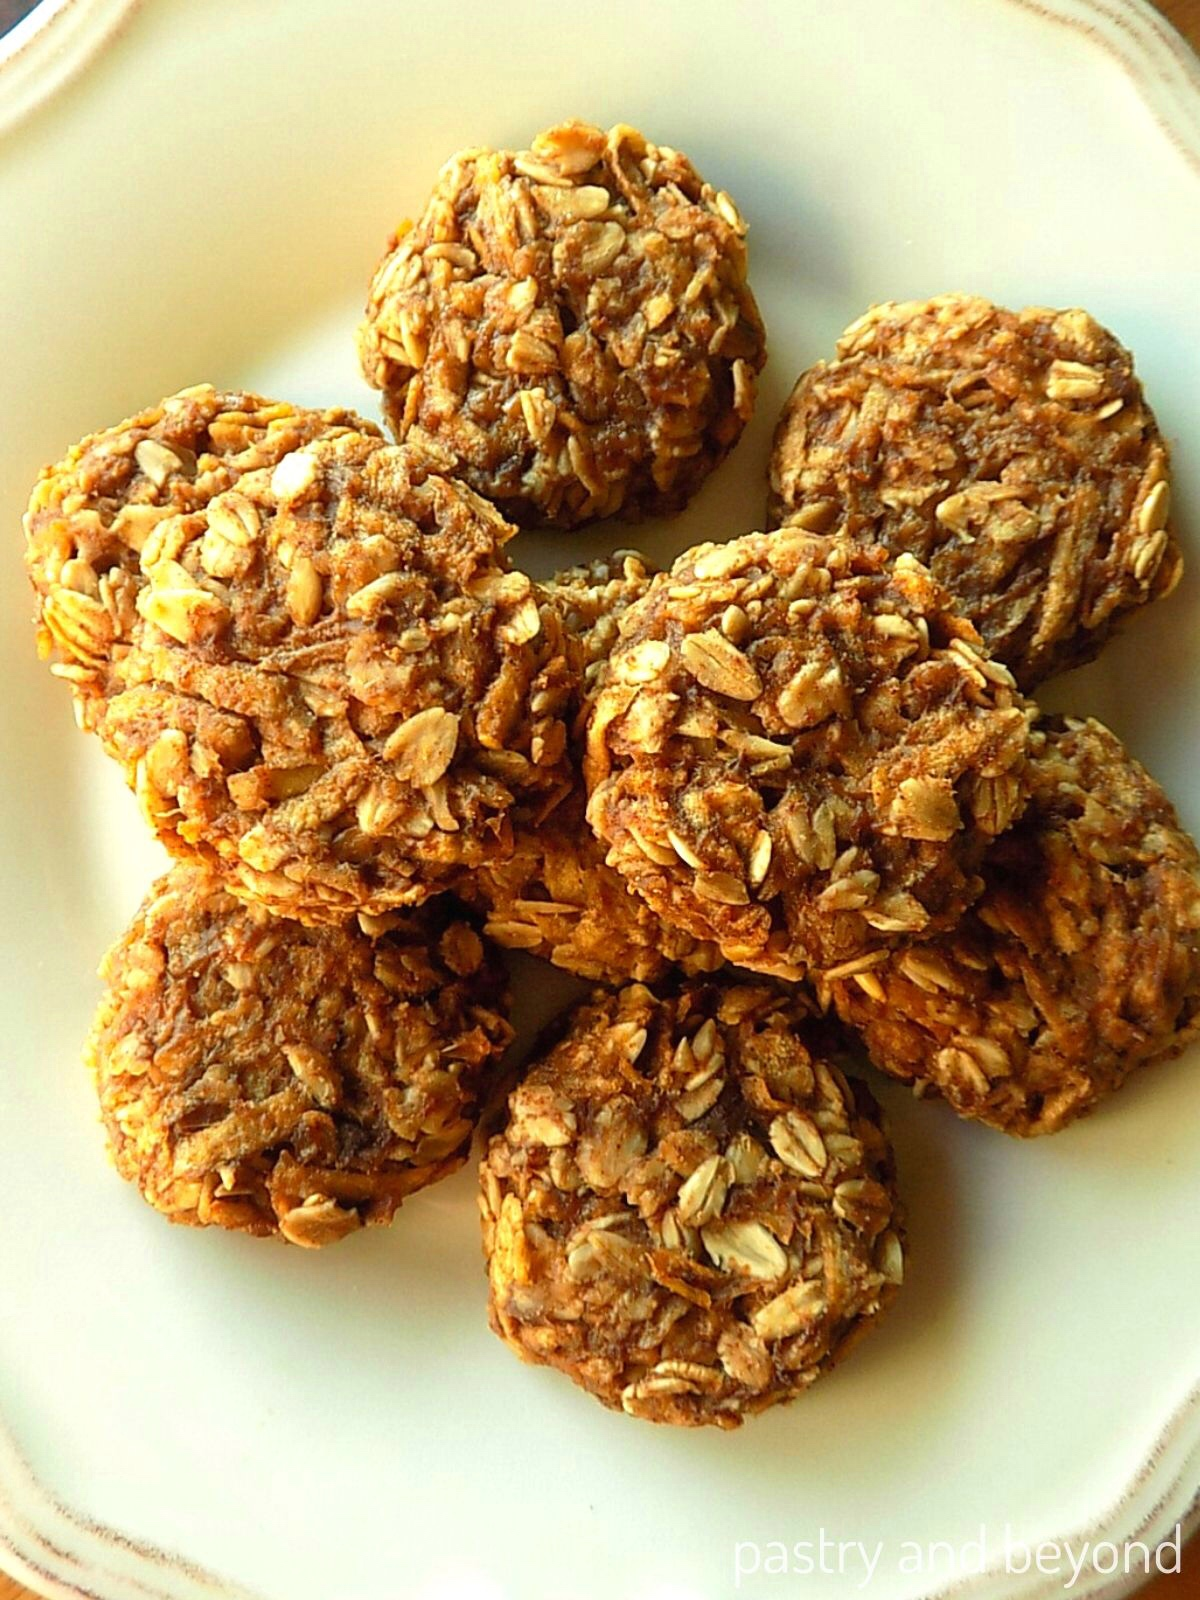 Apple oatmeal cookies on a white plate.